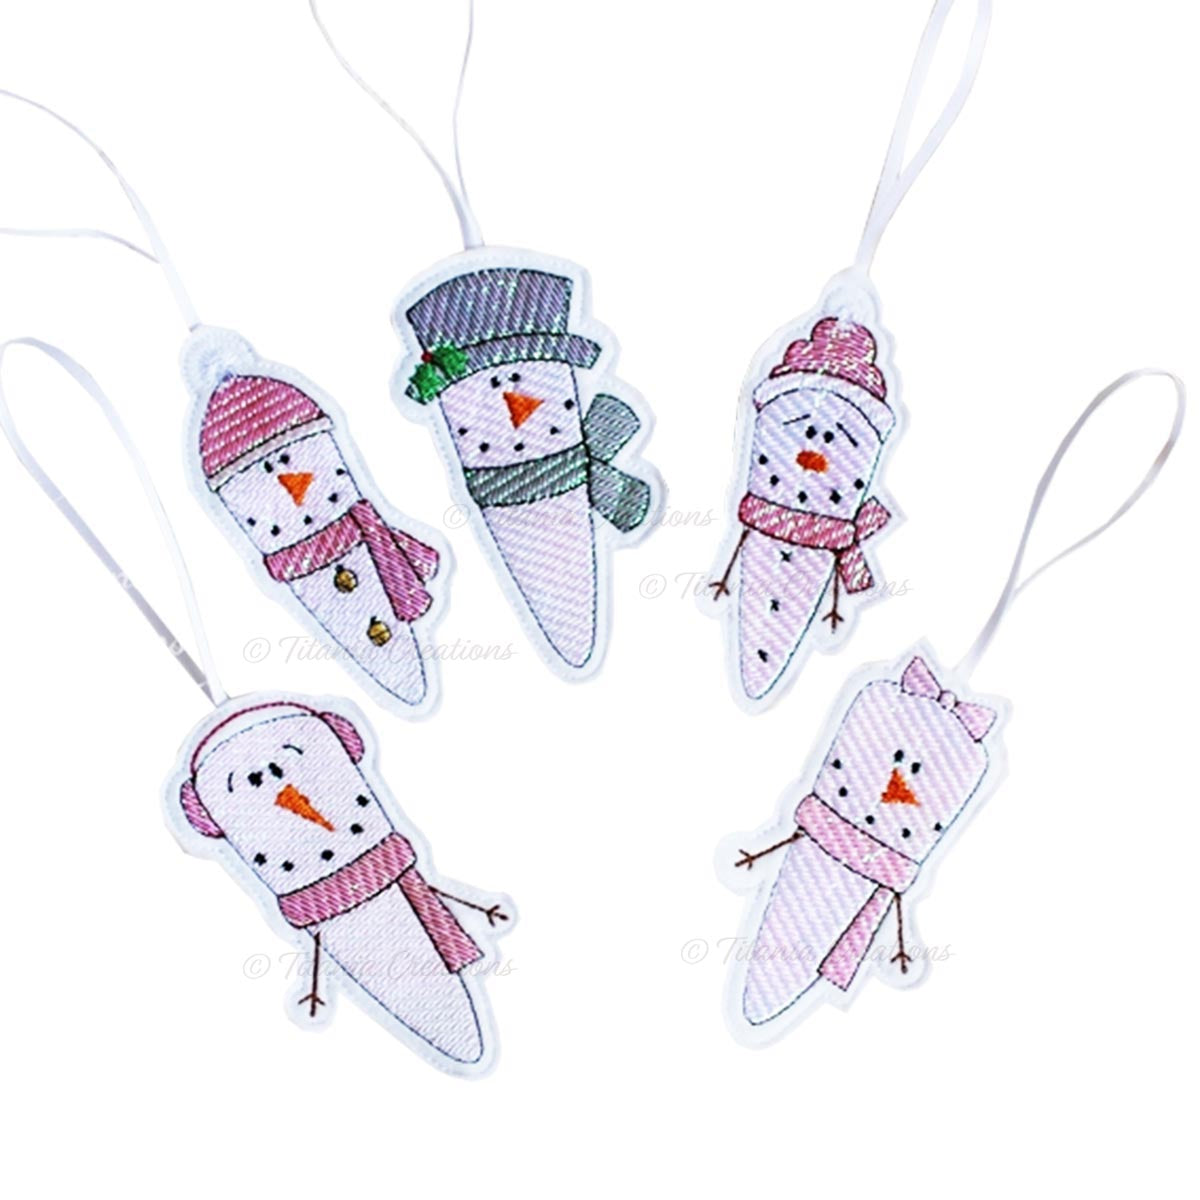 ITH Mylar Icicle Decorations set of 5 4x4